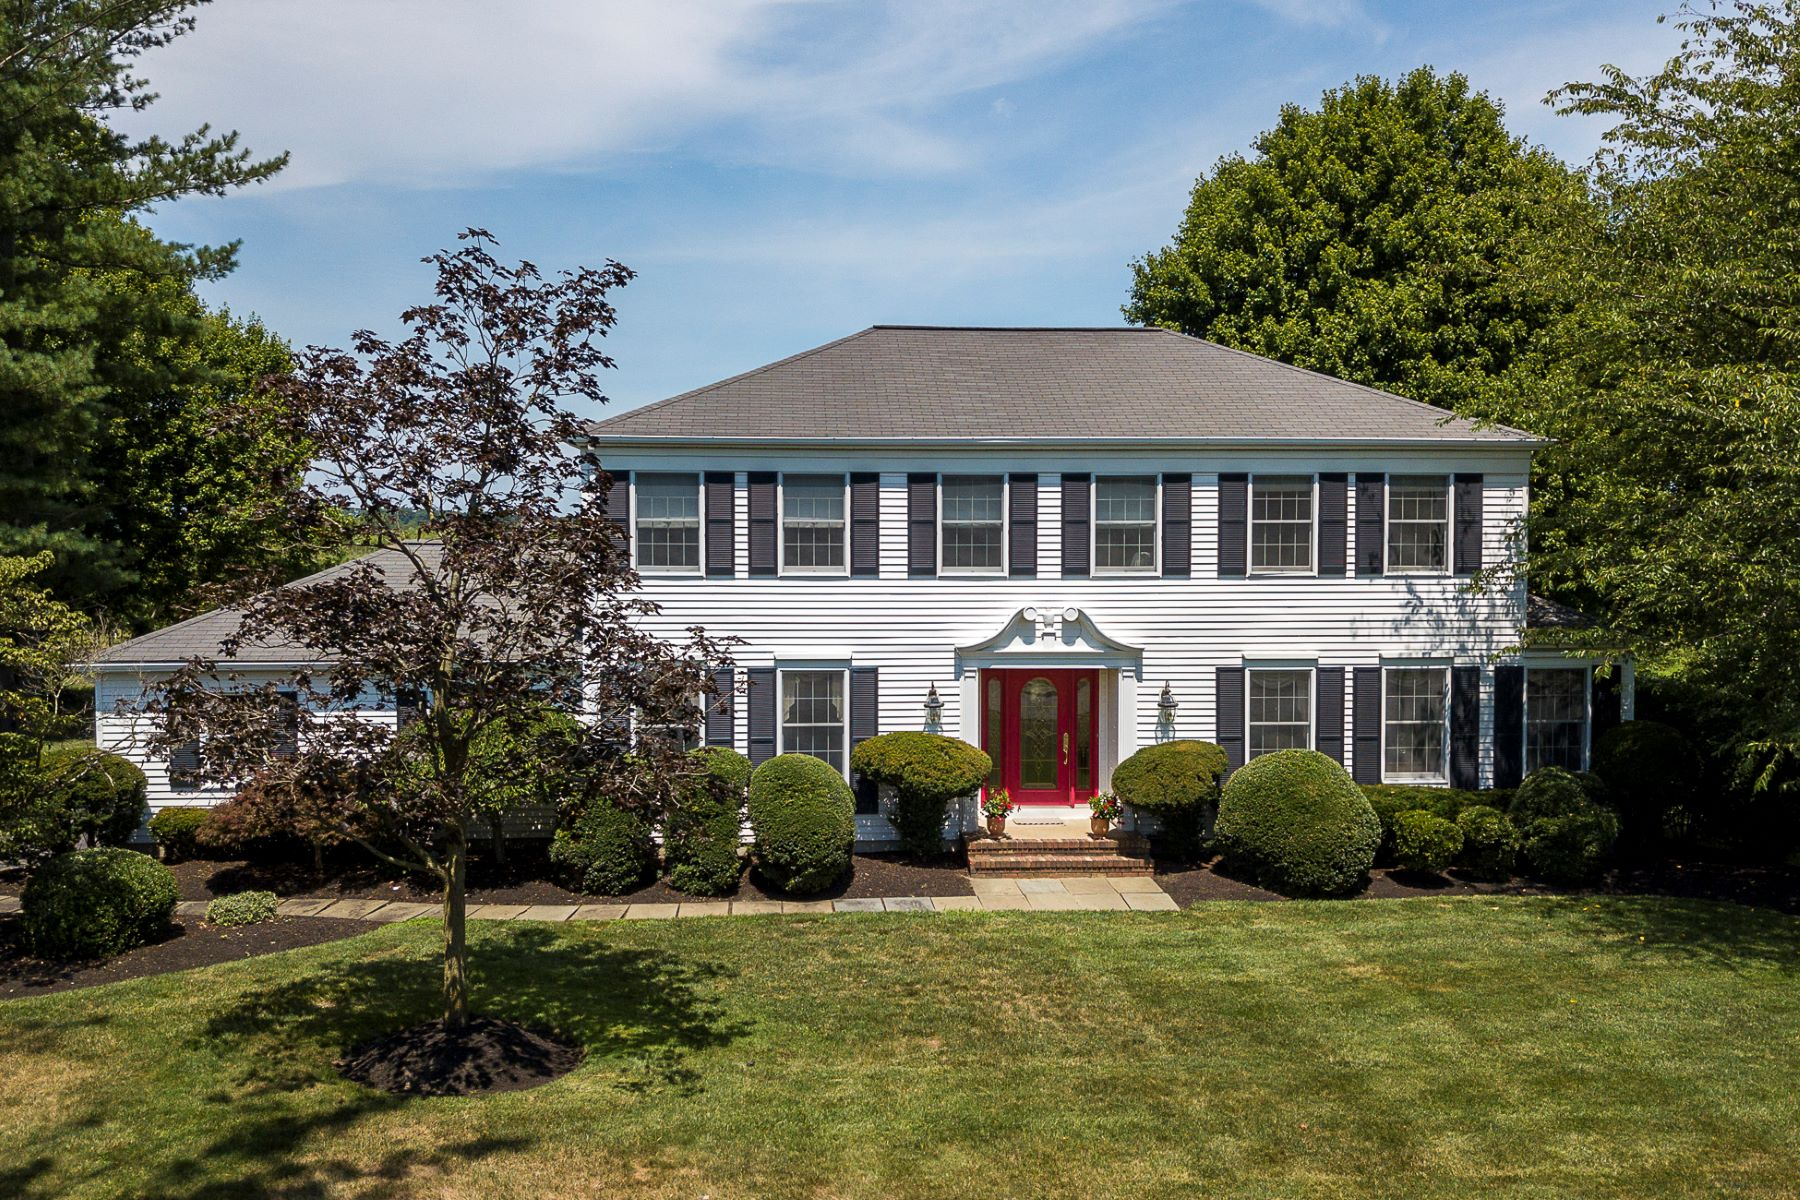 Single Family Homes for Sale at Shadow Oaks Colonial with Preserved Farmland Views 9 Hardley Drive, Cranbury, New Jersey 08512 United States